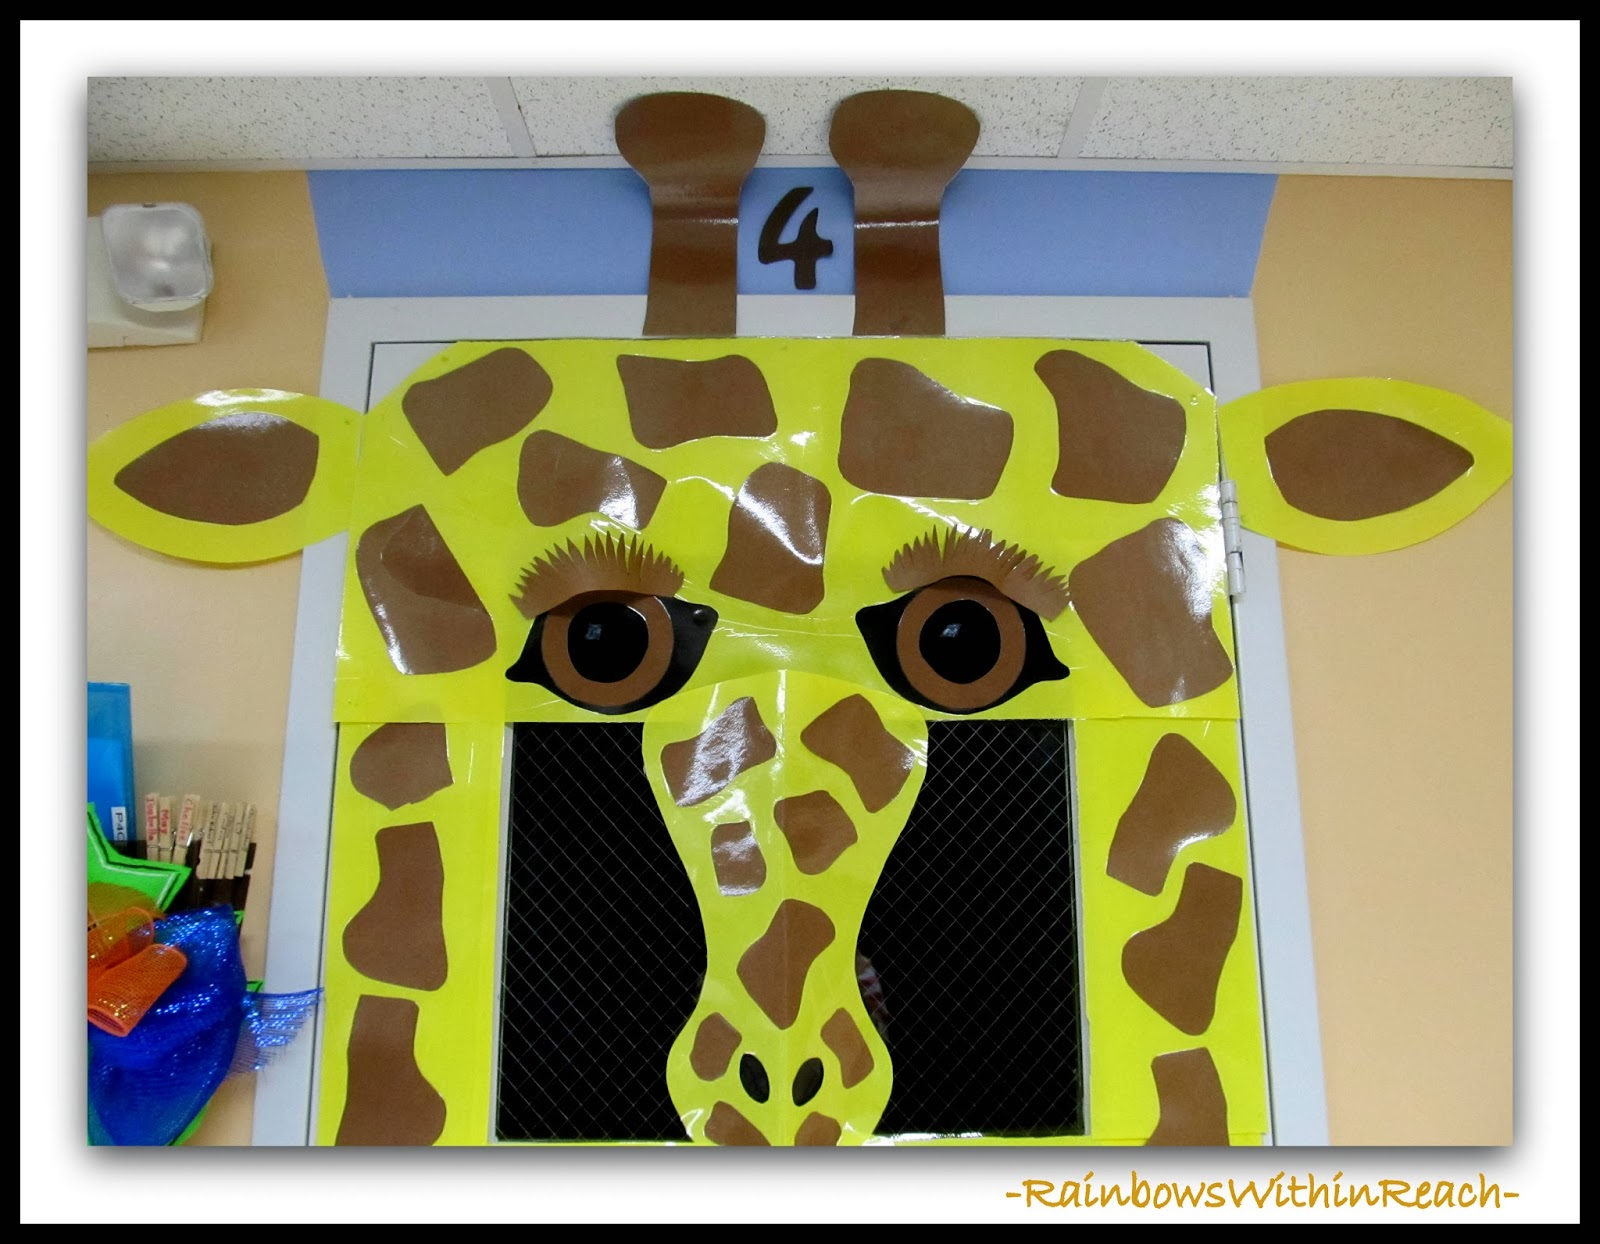 Decorated Classroom Door for Giraffe Theme (face detail) via RainbowsWithinReach